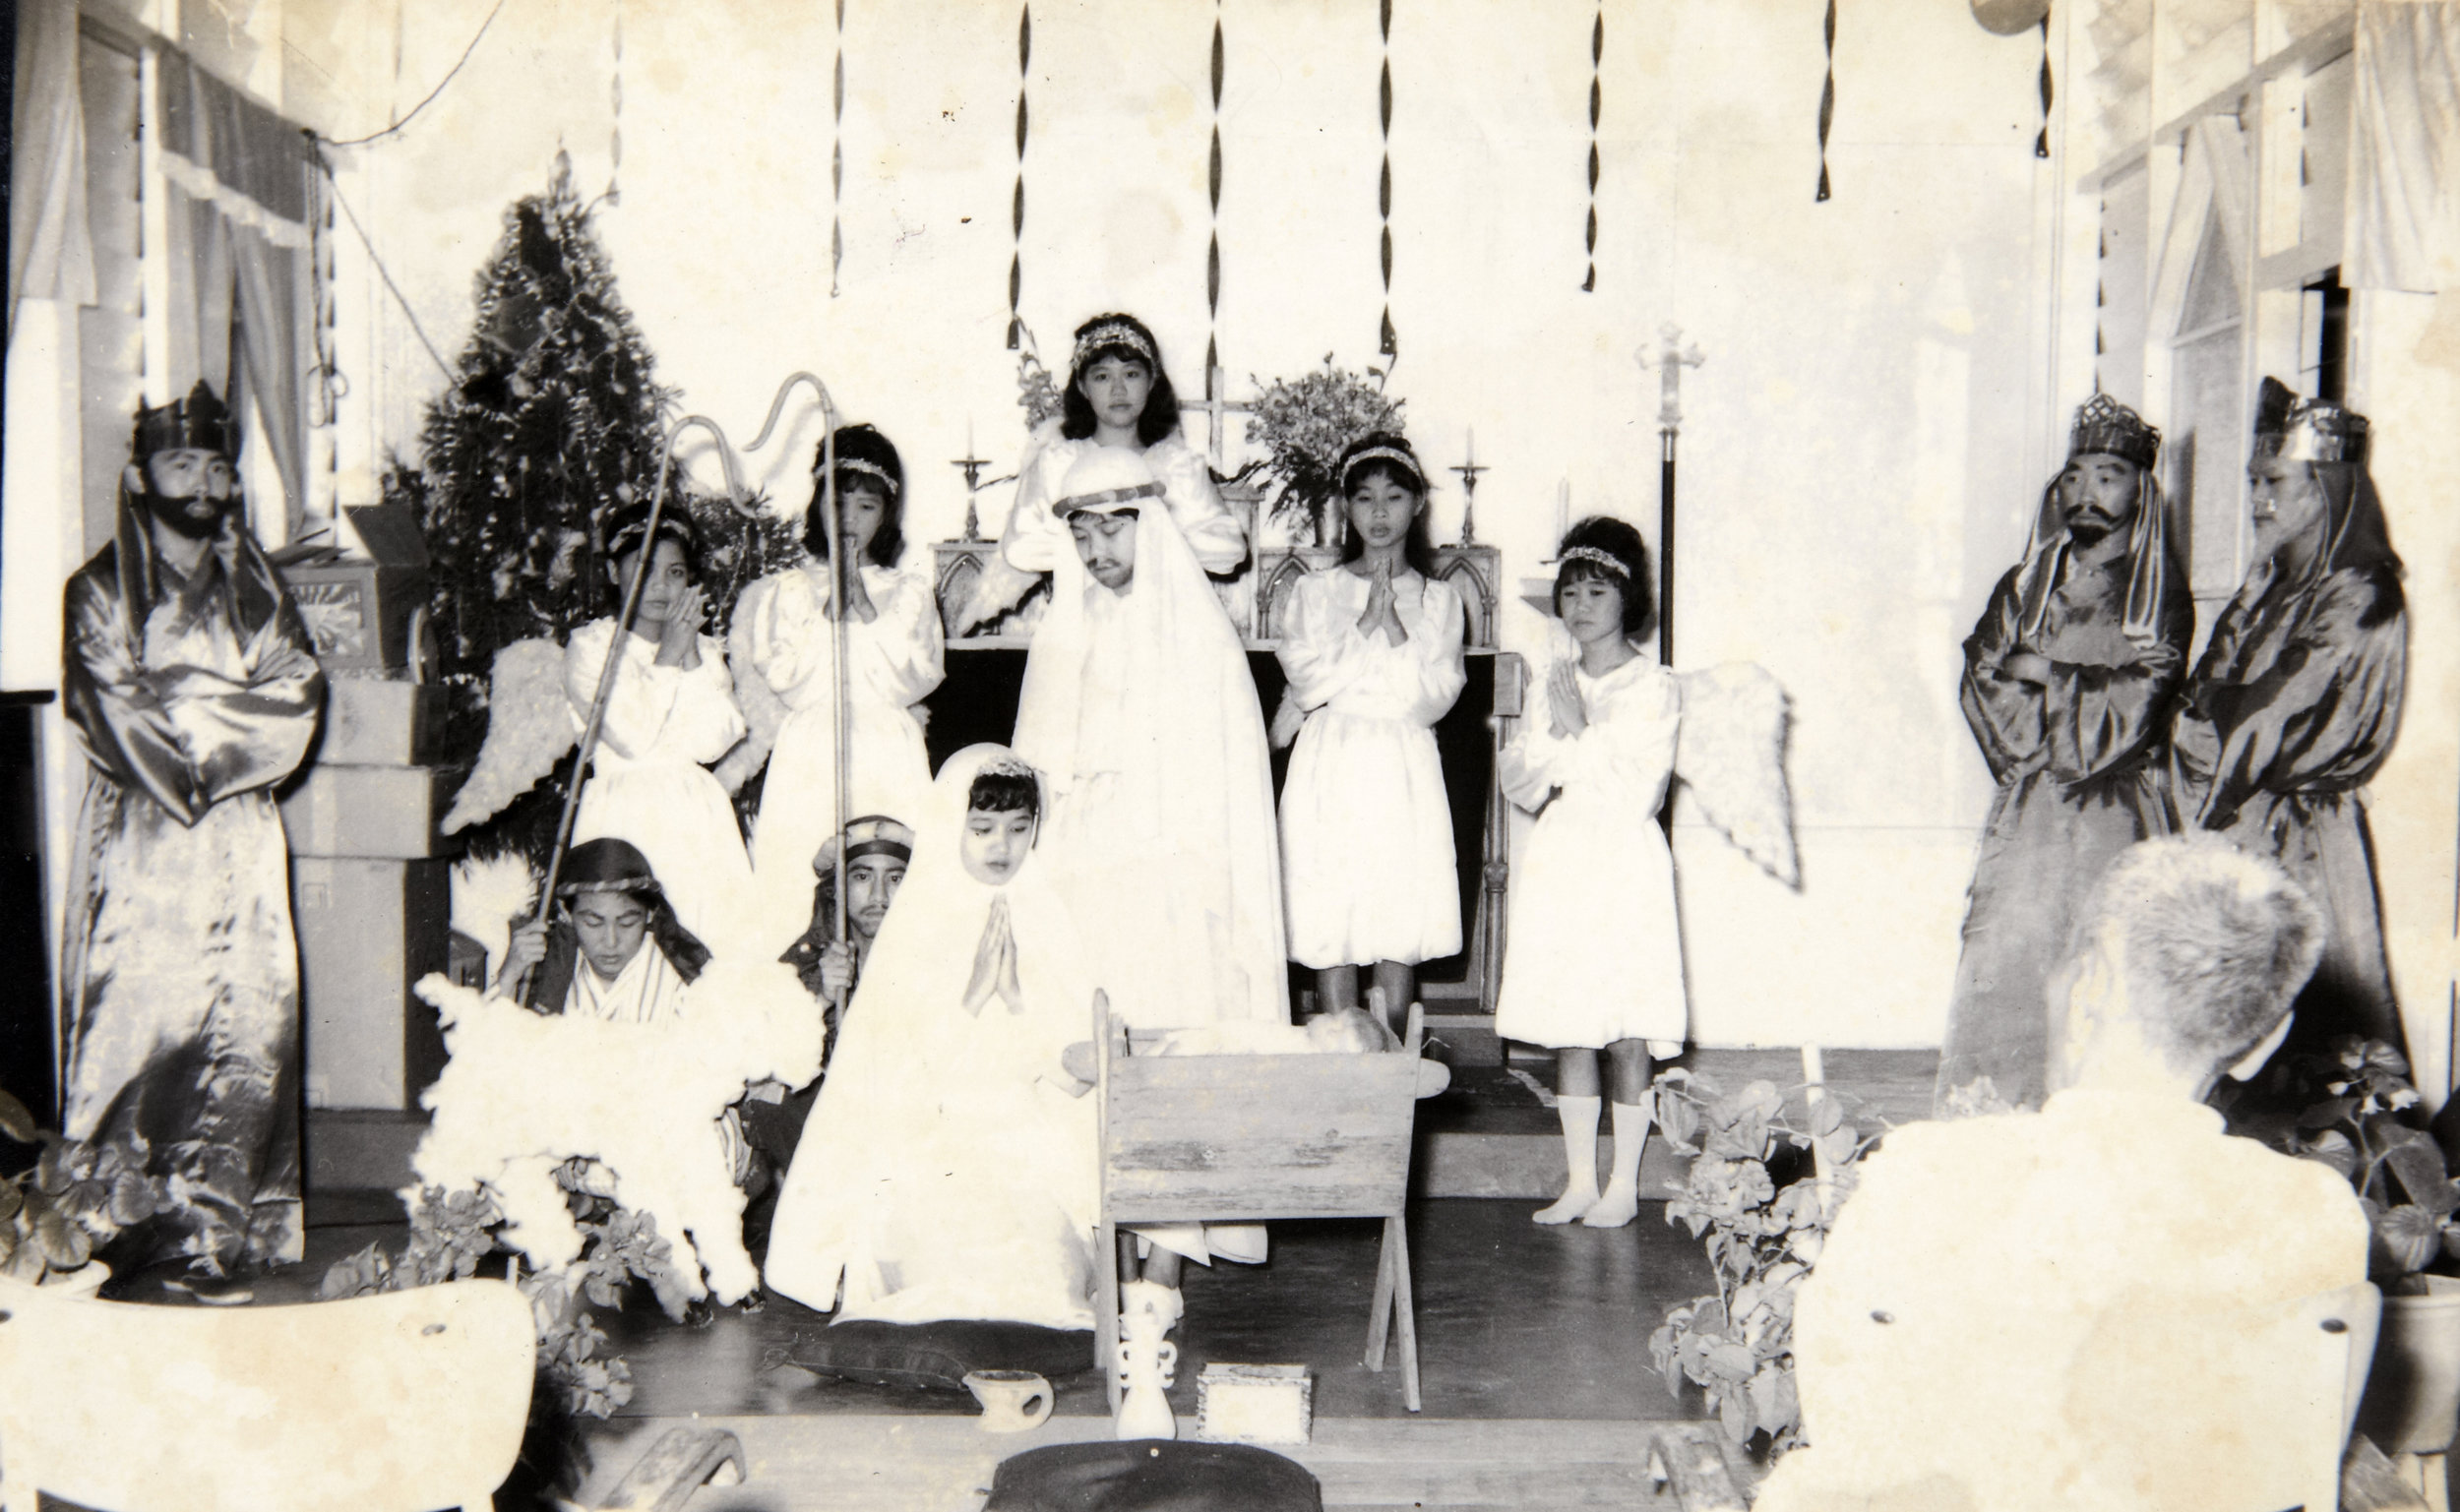 The residents performing a play in the St. Lourdes Catholic Church. (photo courtesy of Law Seng Hoa)